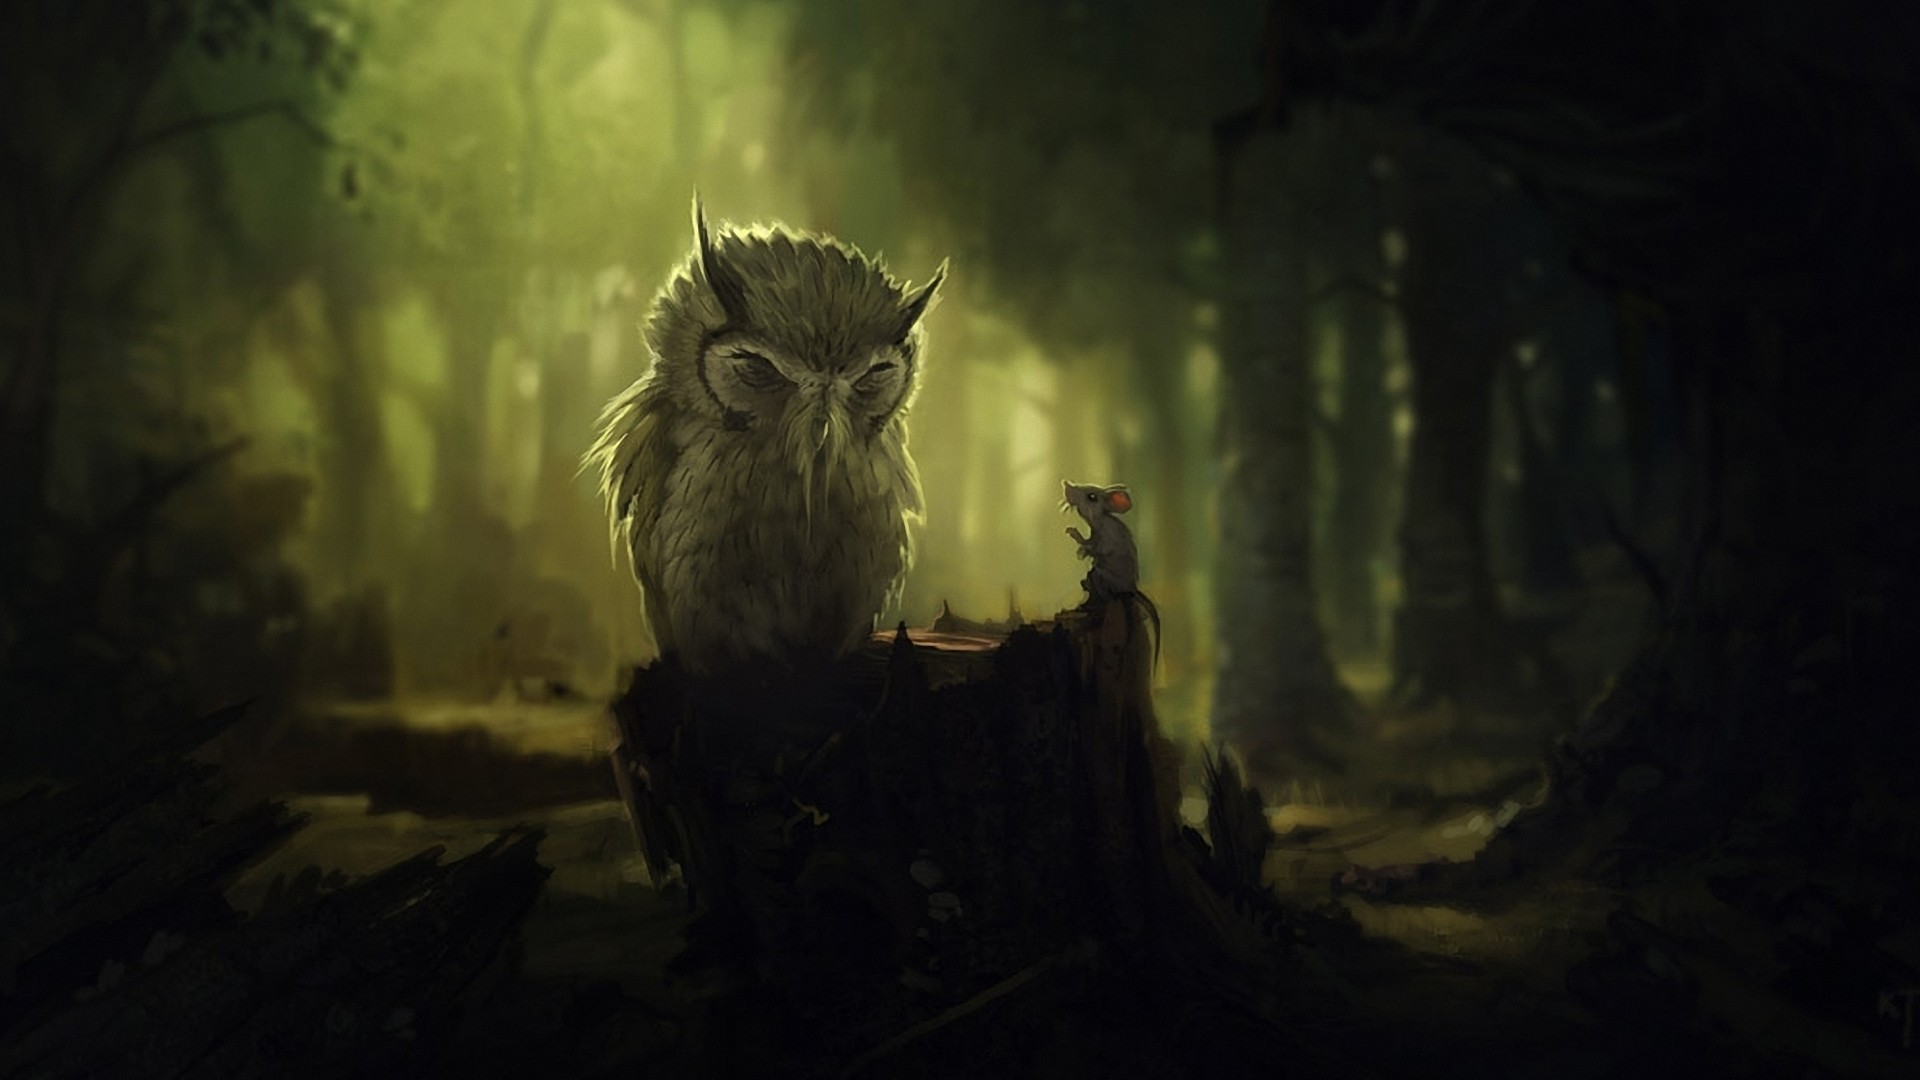 1920x1080 Animal - Owl Cartoon Wallpaper